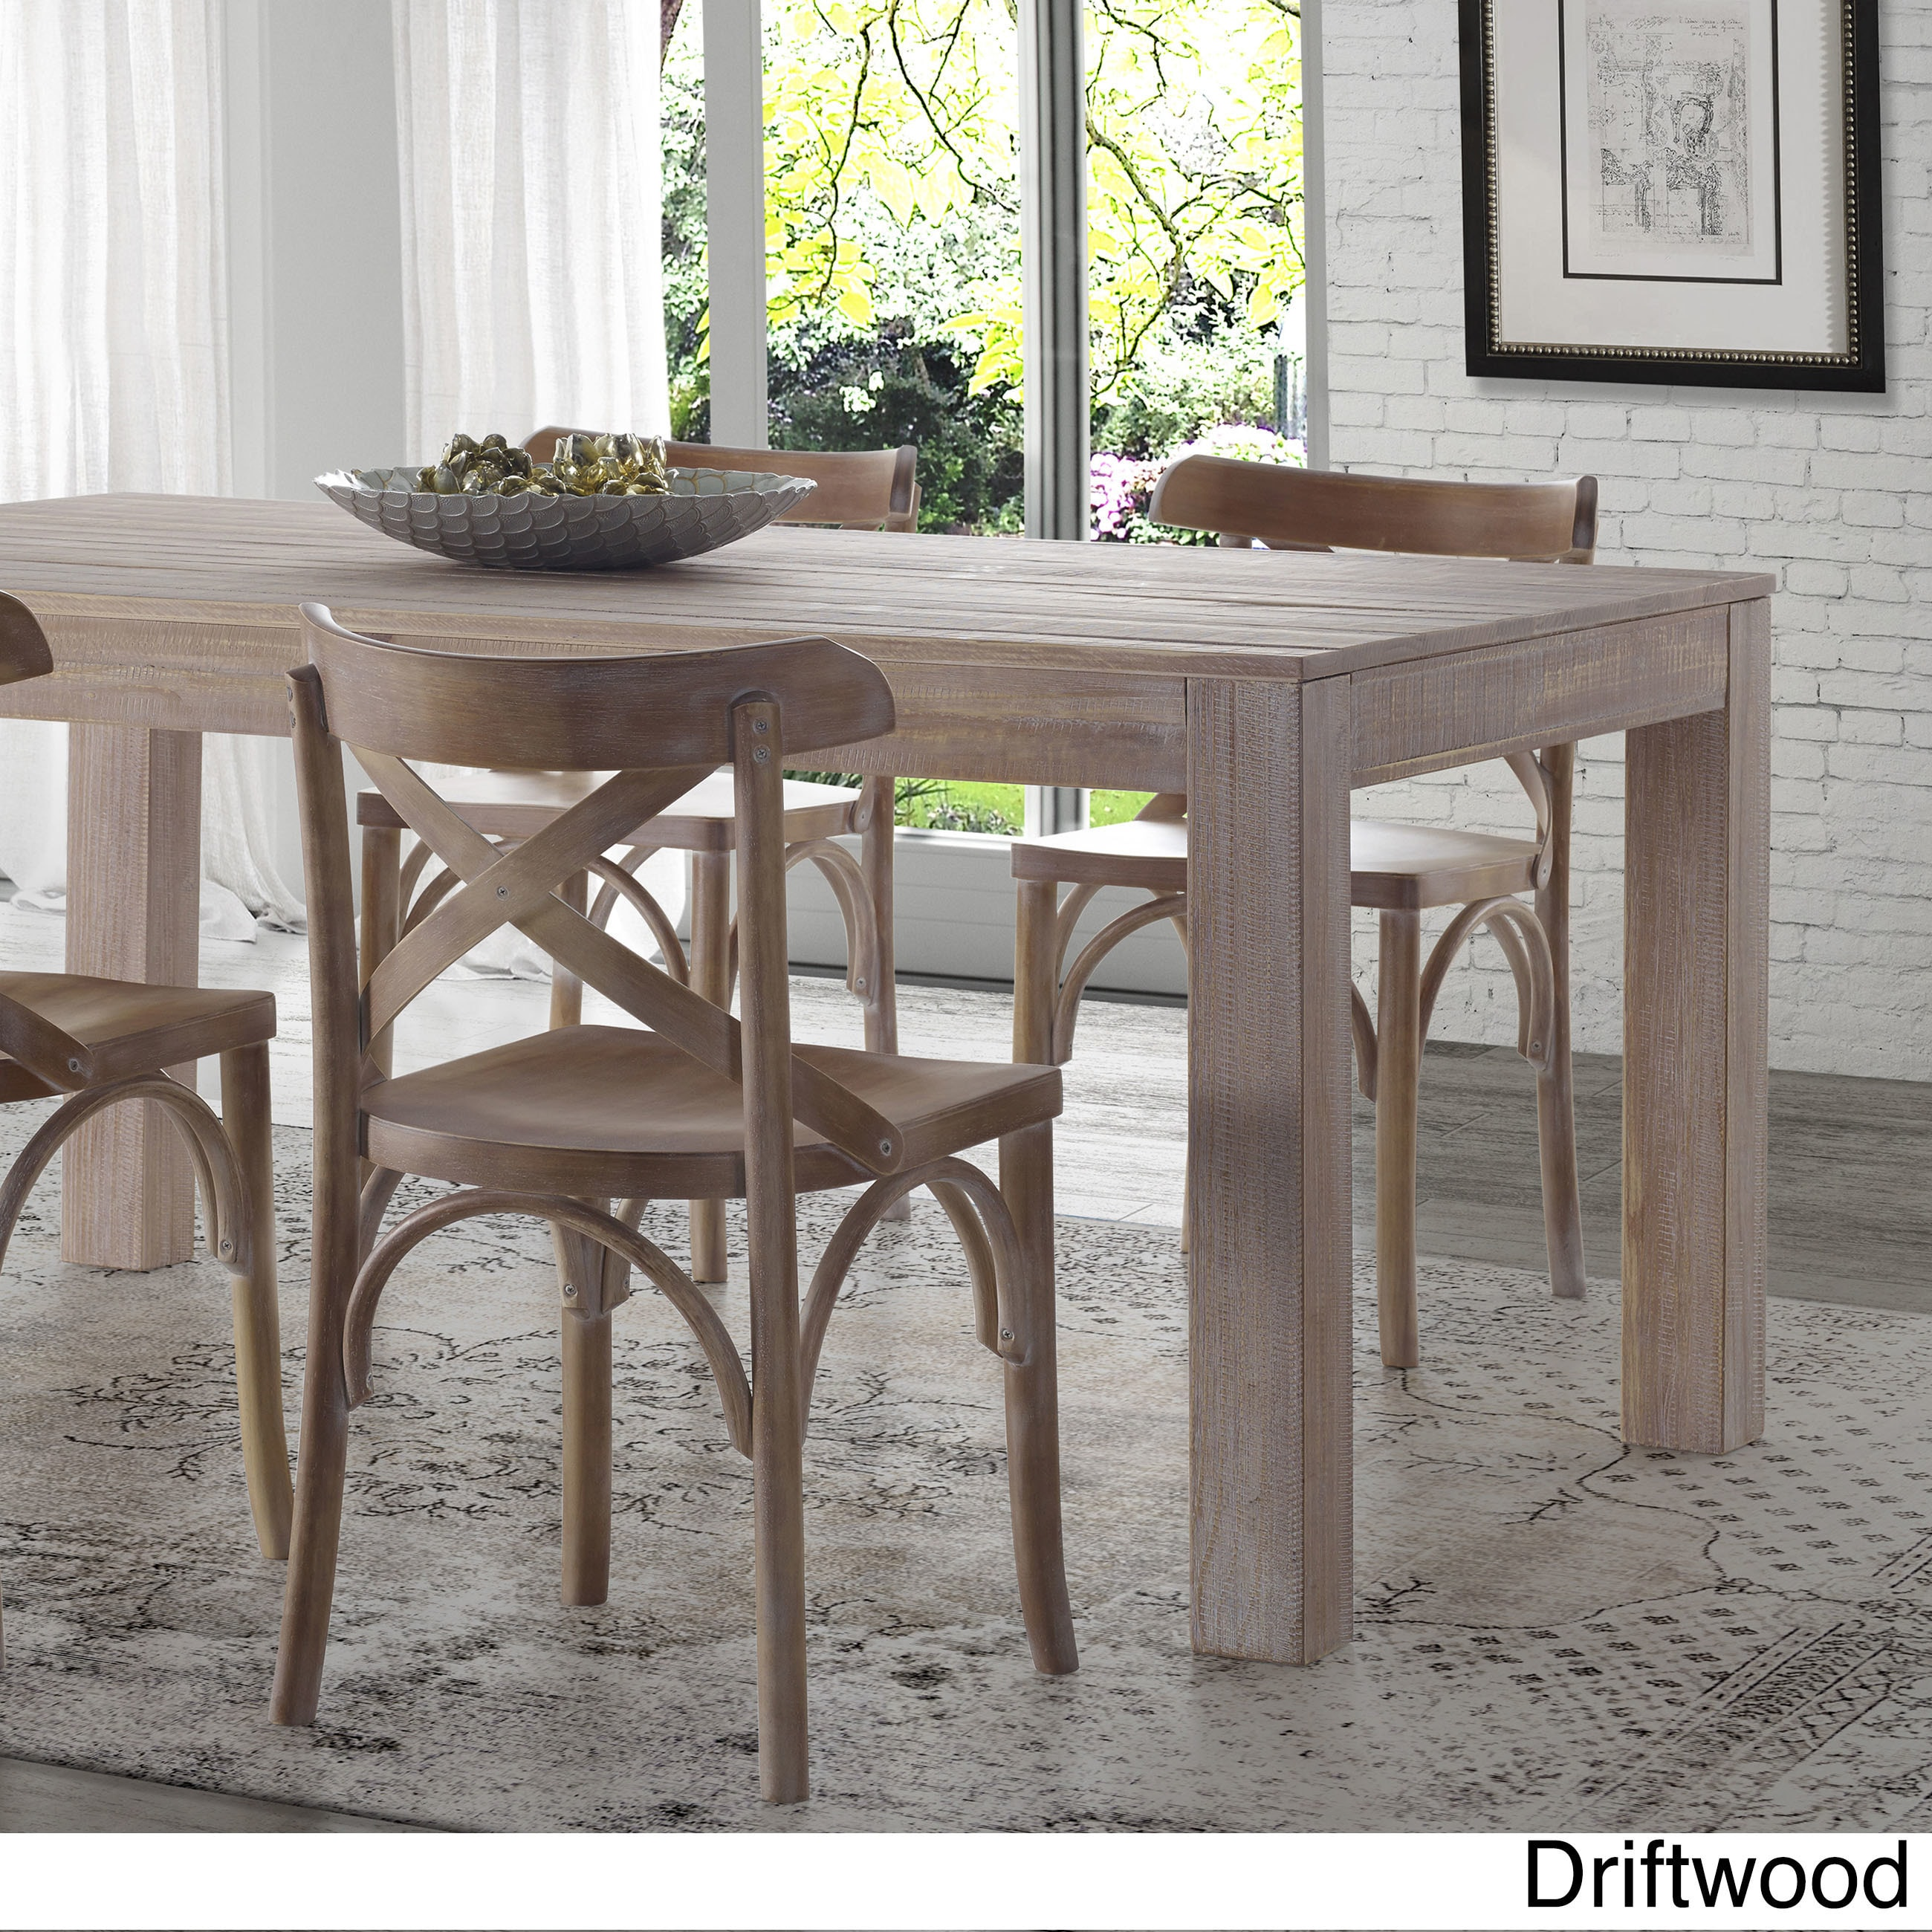 Miraculous Grain Wood Furniture Montauk Dining Table Solid Wood Home Interior And Landscaping Ologienasavecom